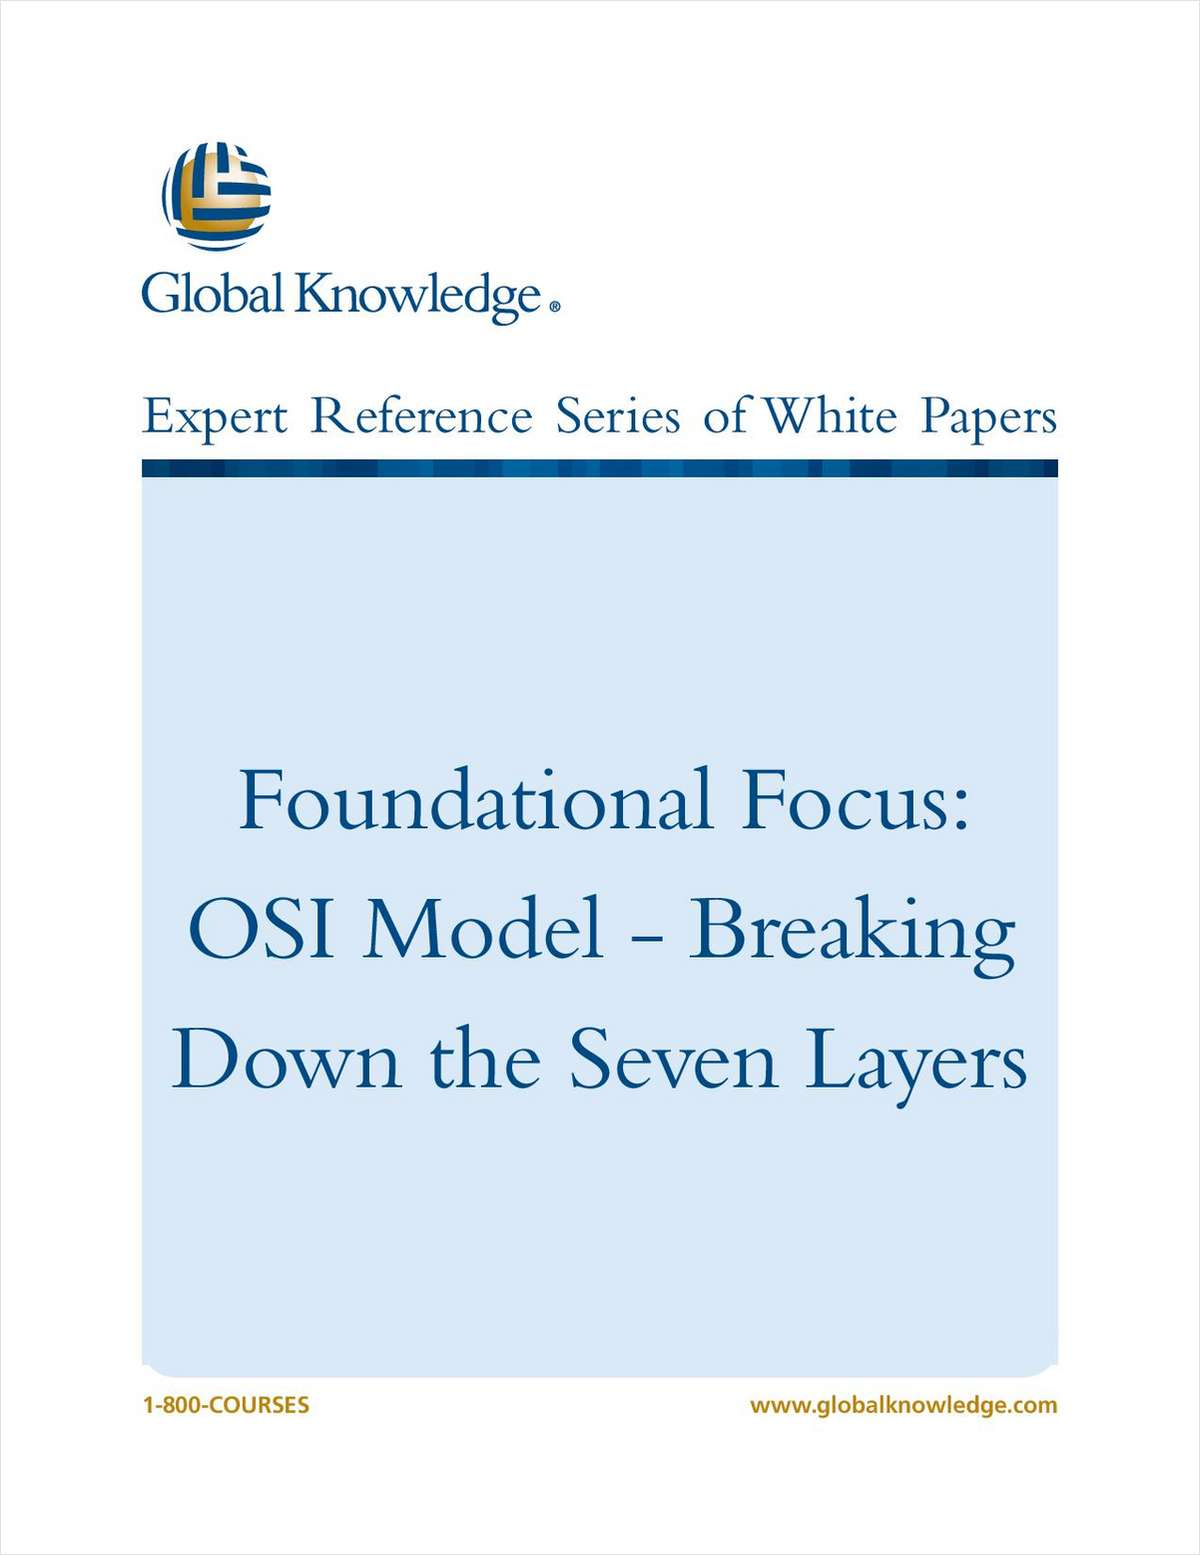 Foundational Focus: OSI Model - Breaking Down the 7 Layers